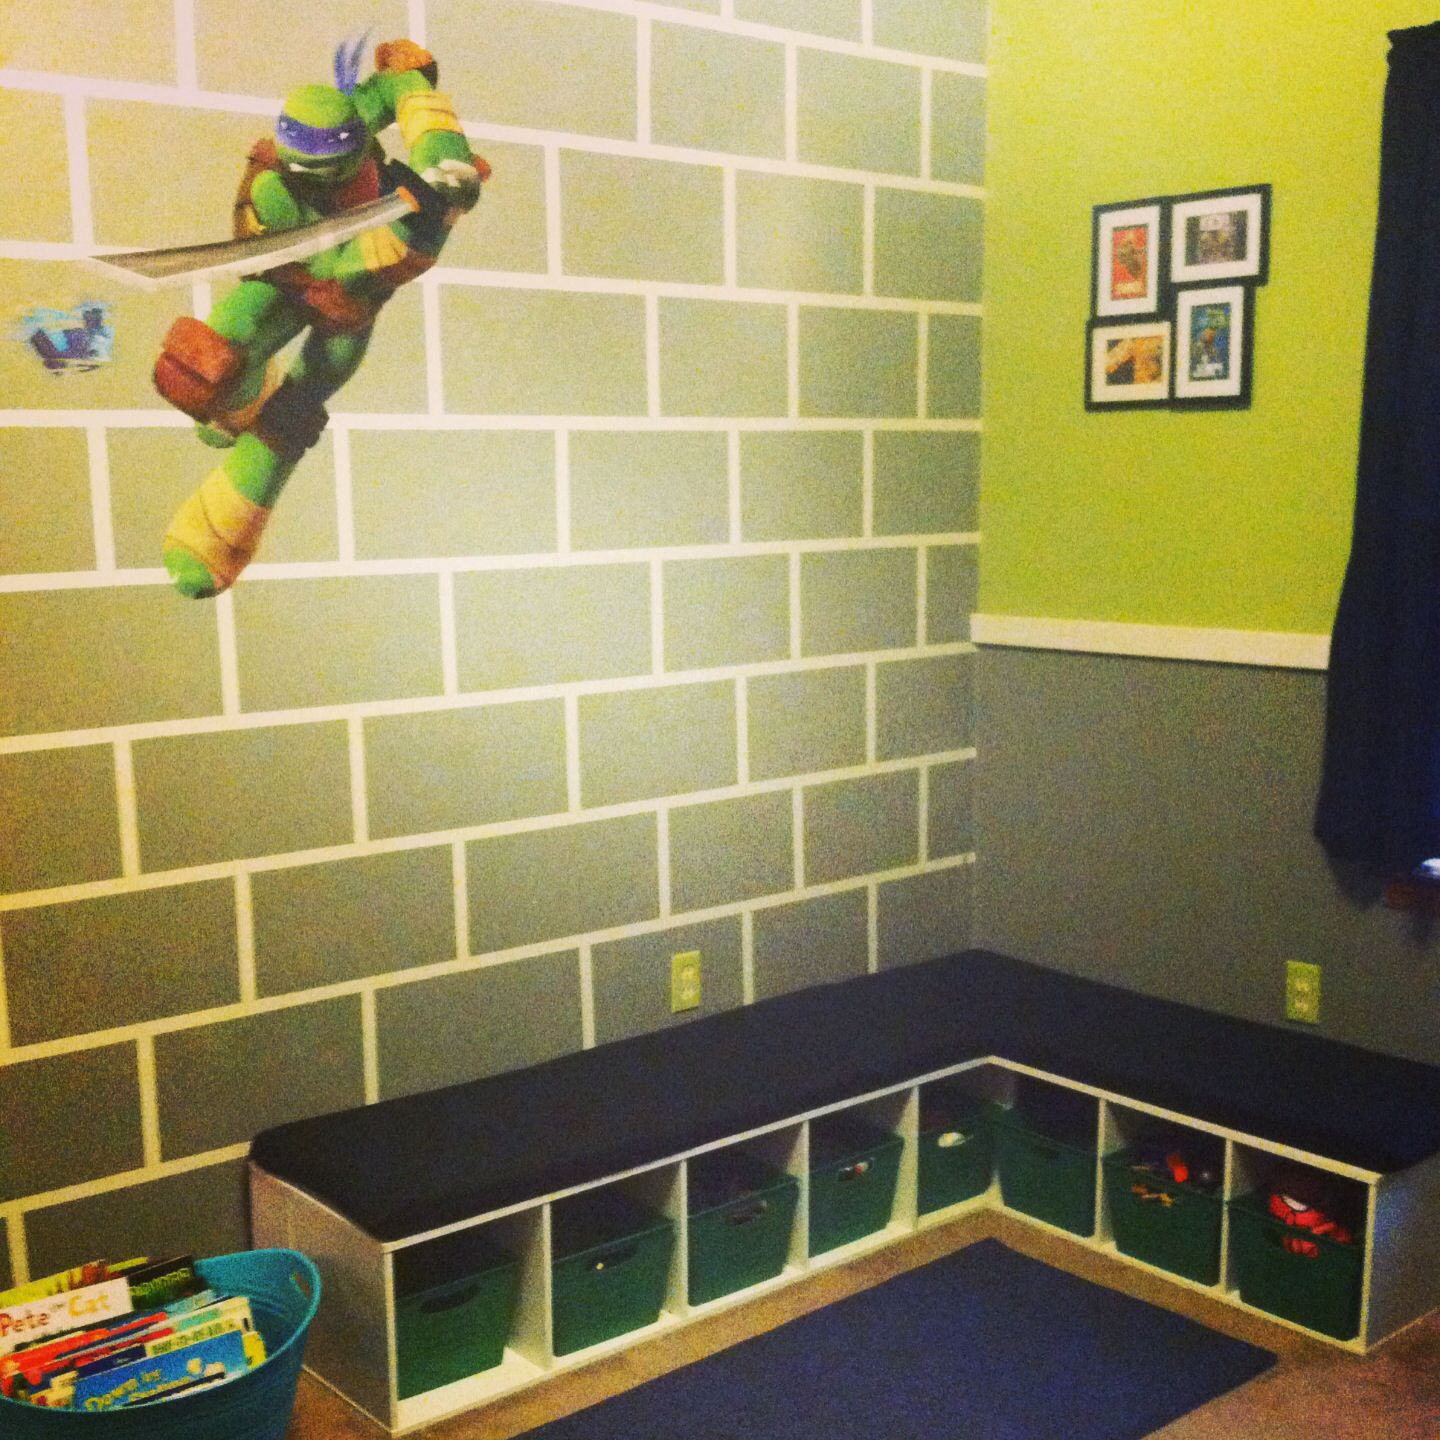 Teenage Mutant Ninja Turtle Bedroom - Sara!!! We can totally do this ...